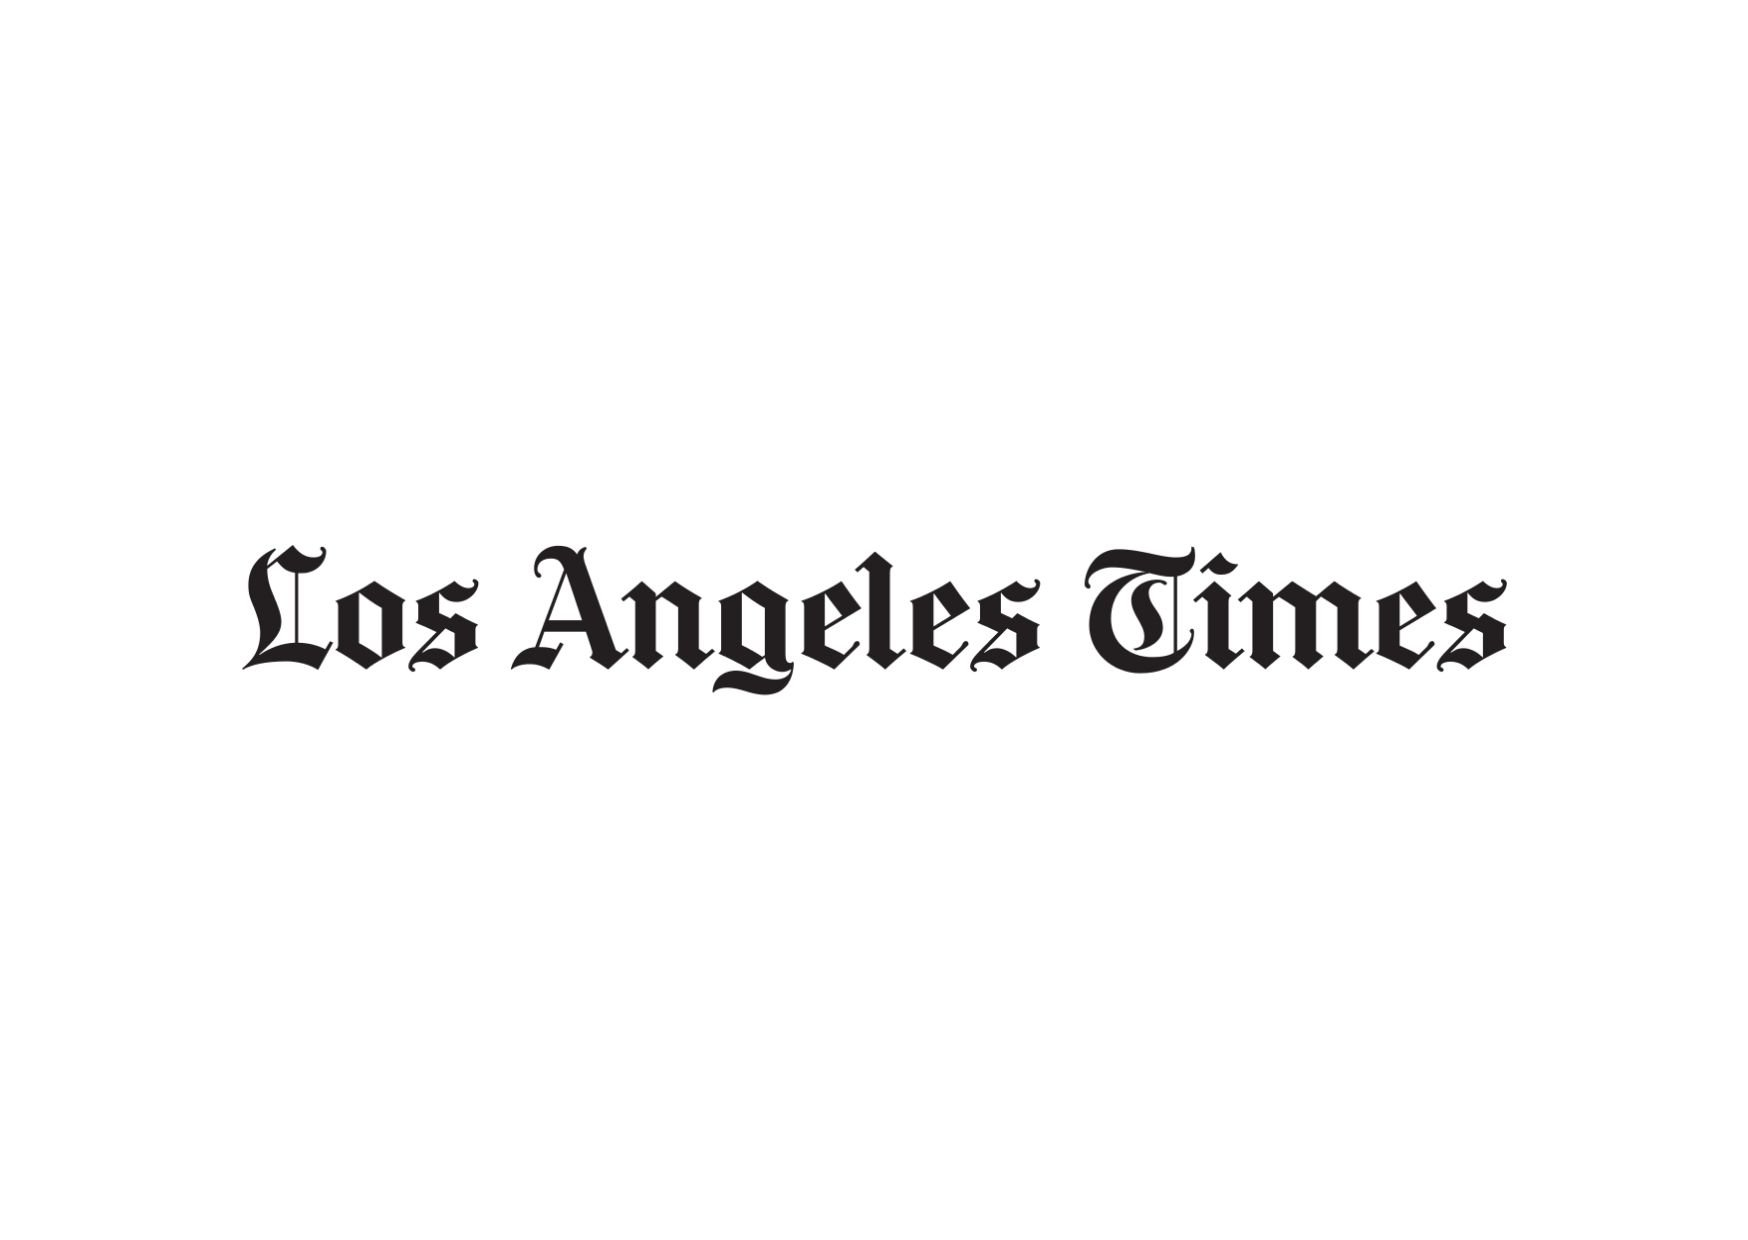 Noreena's piece in Los Angeles Times